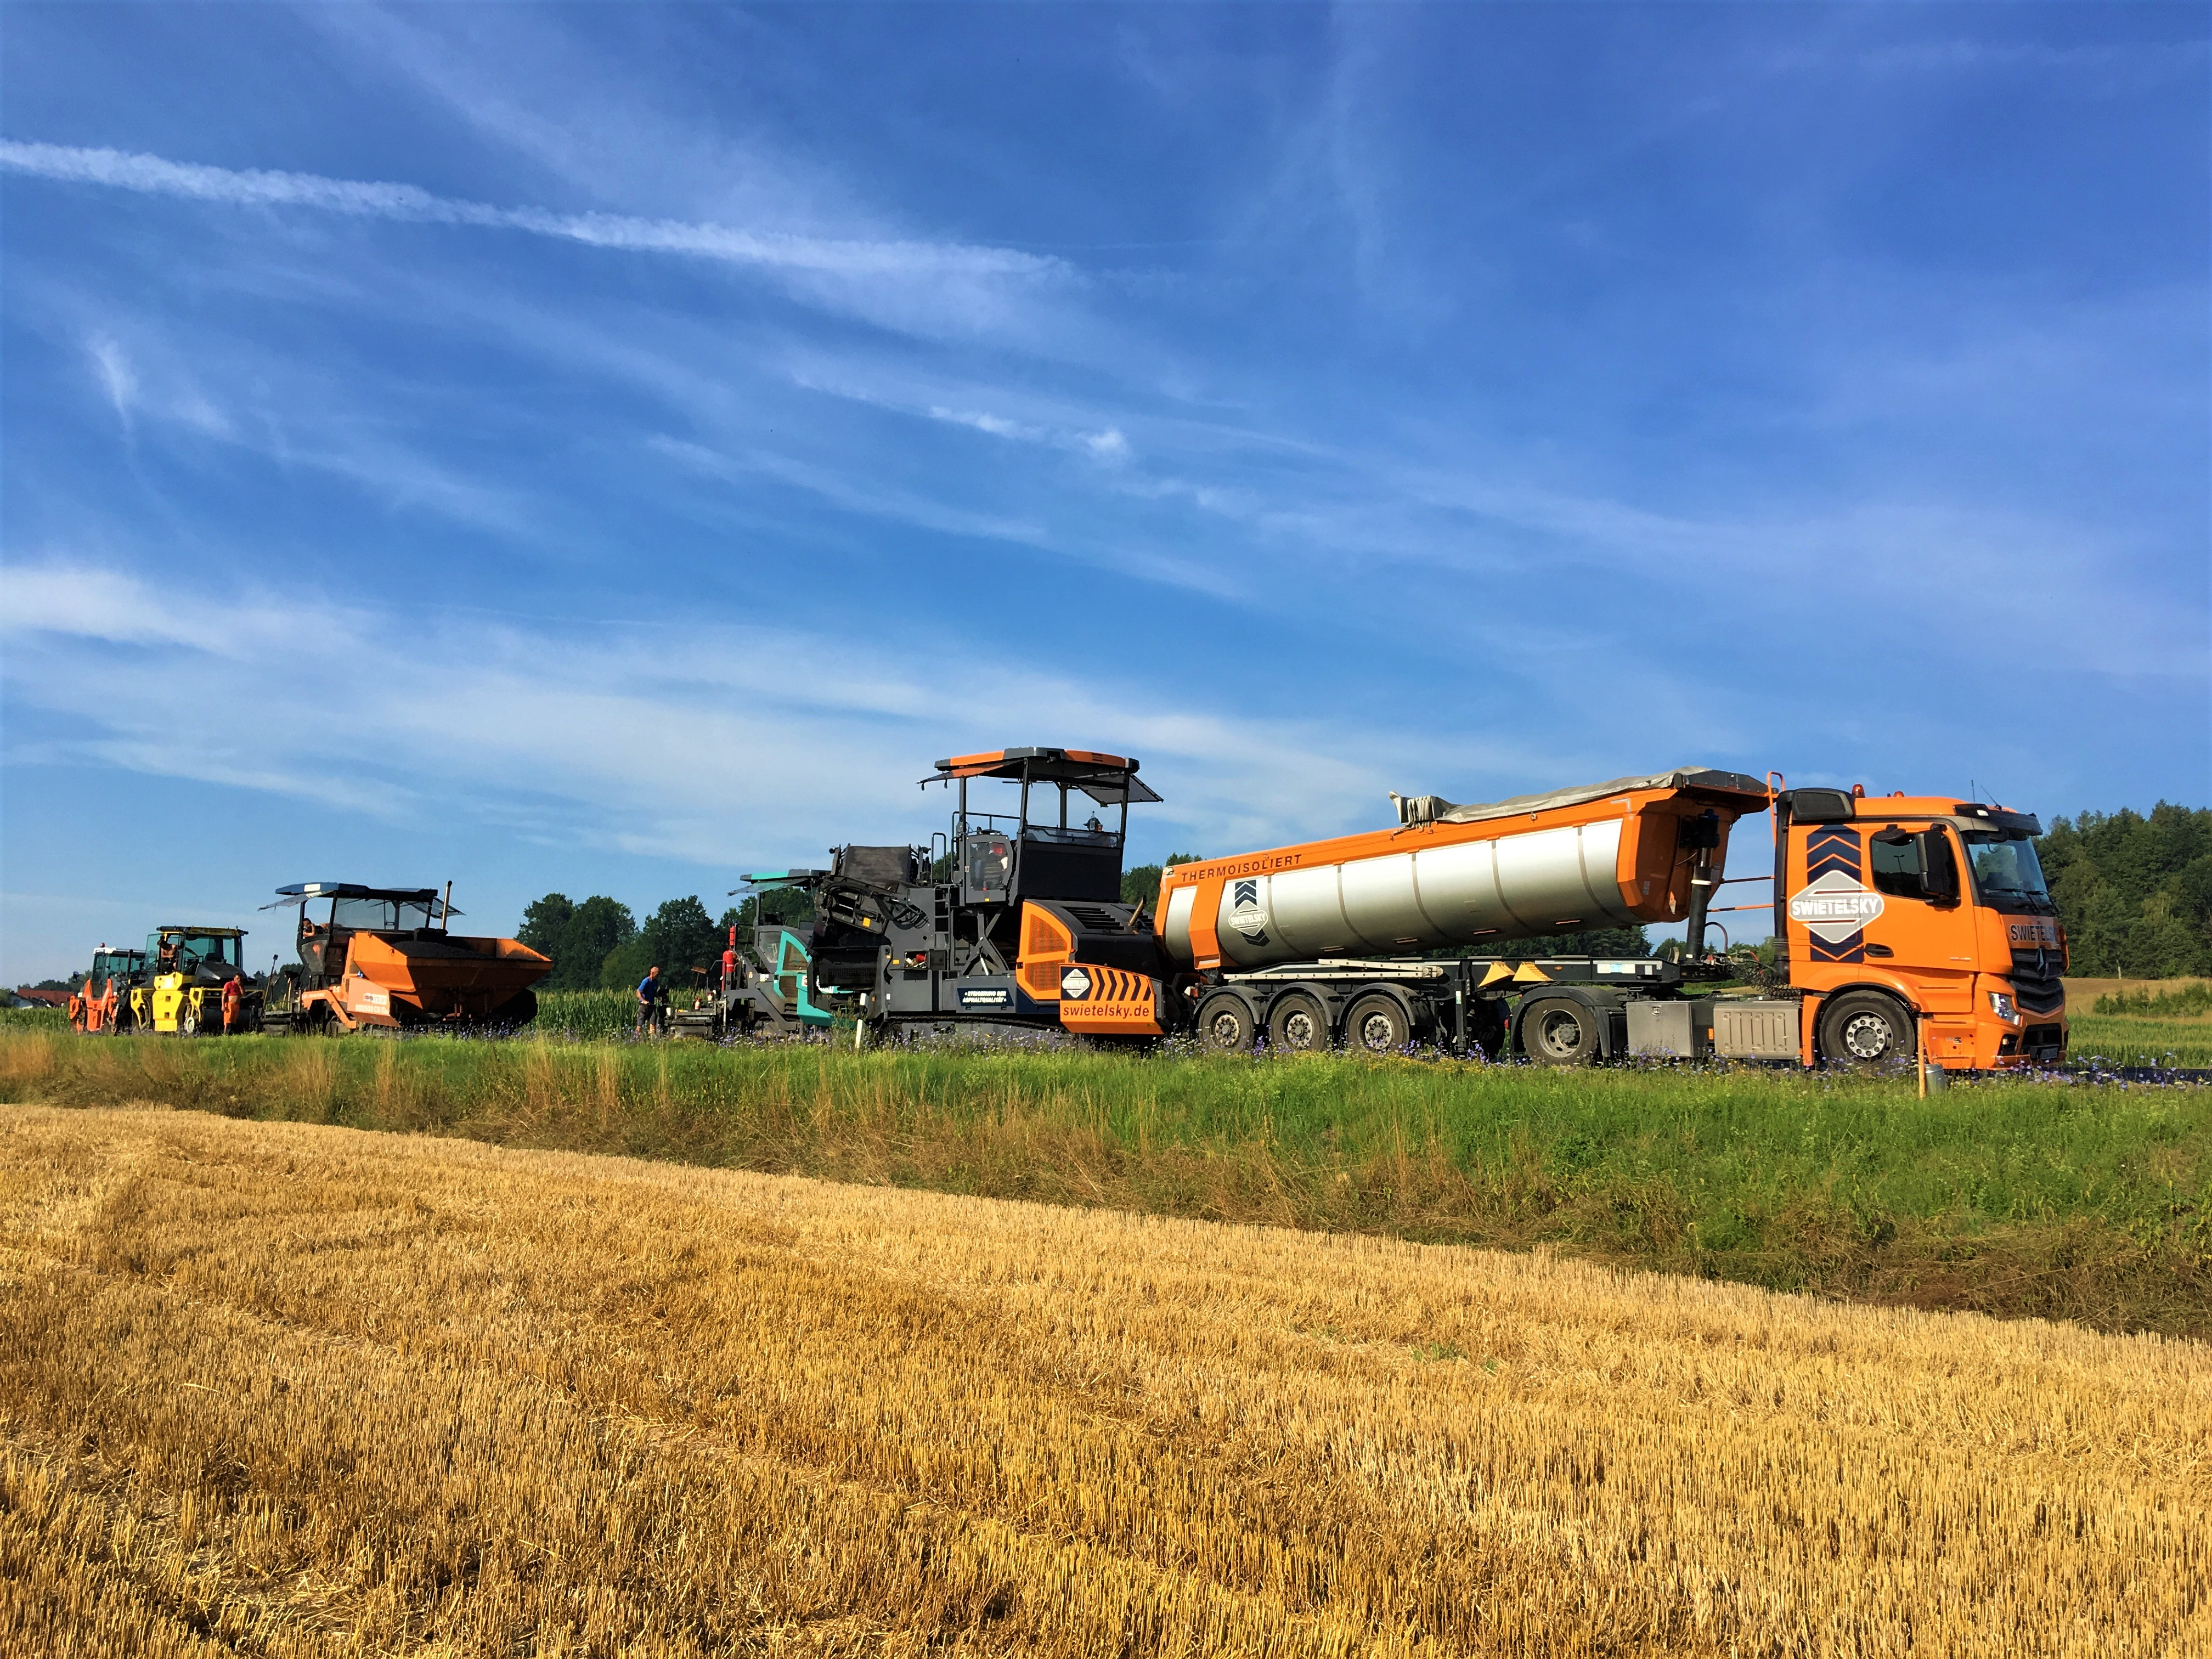 Inst. Mainburg-Appersdorf - St. Bauamt Landshut - Construction de routes et de ponts